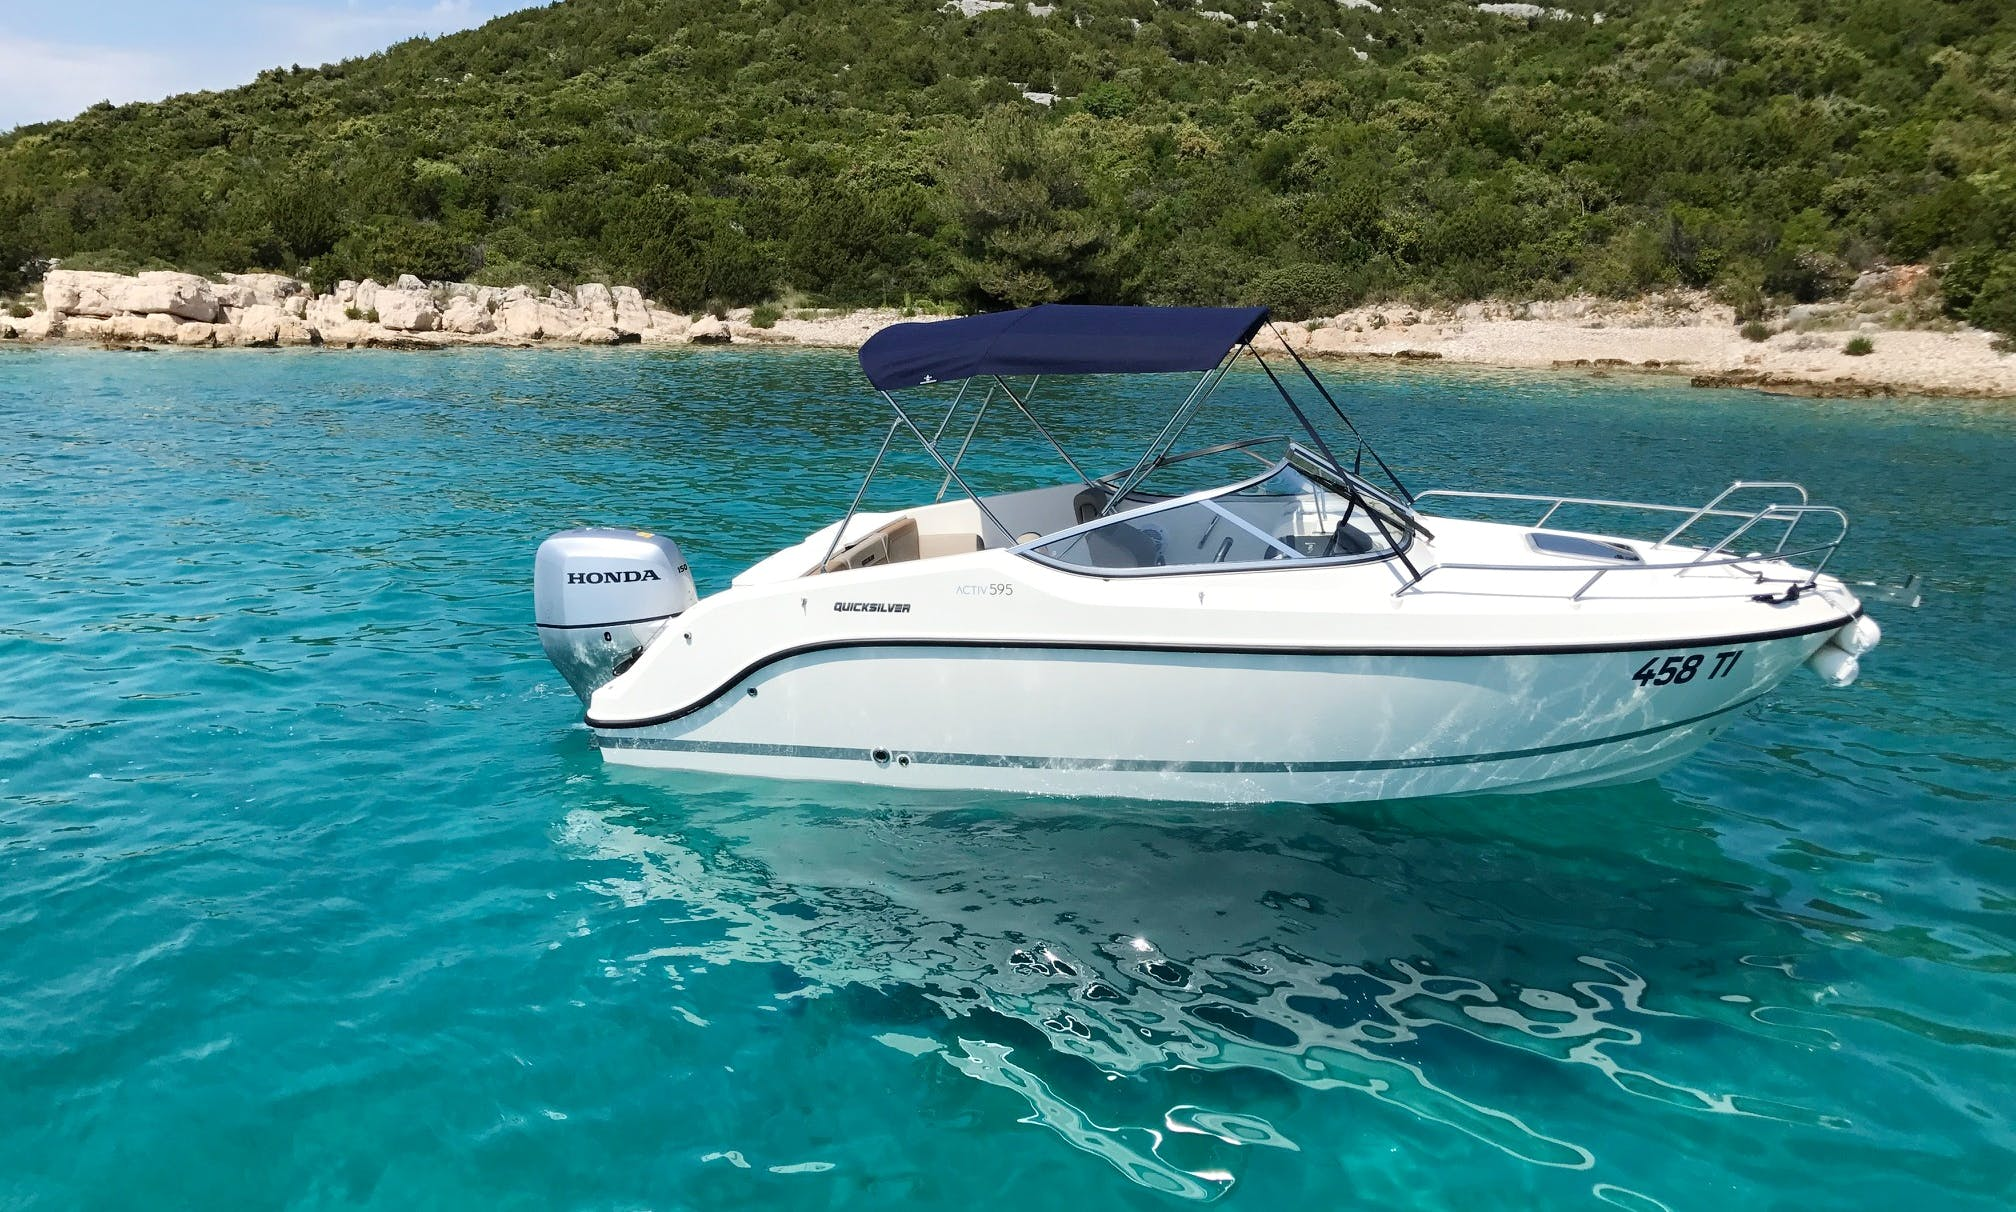 Quicksilver 595 Cabin Cruiser for 6 People in Tisno, Croatia